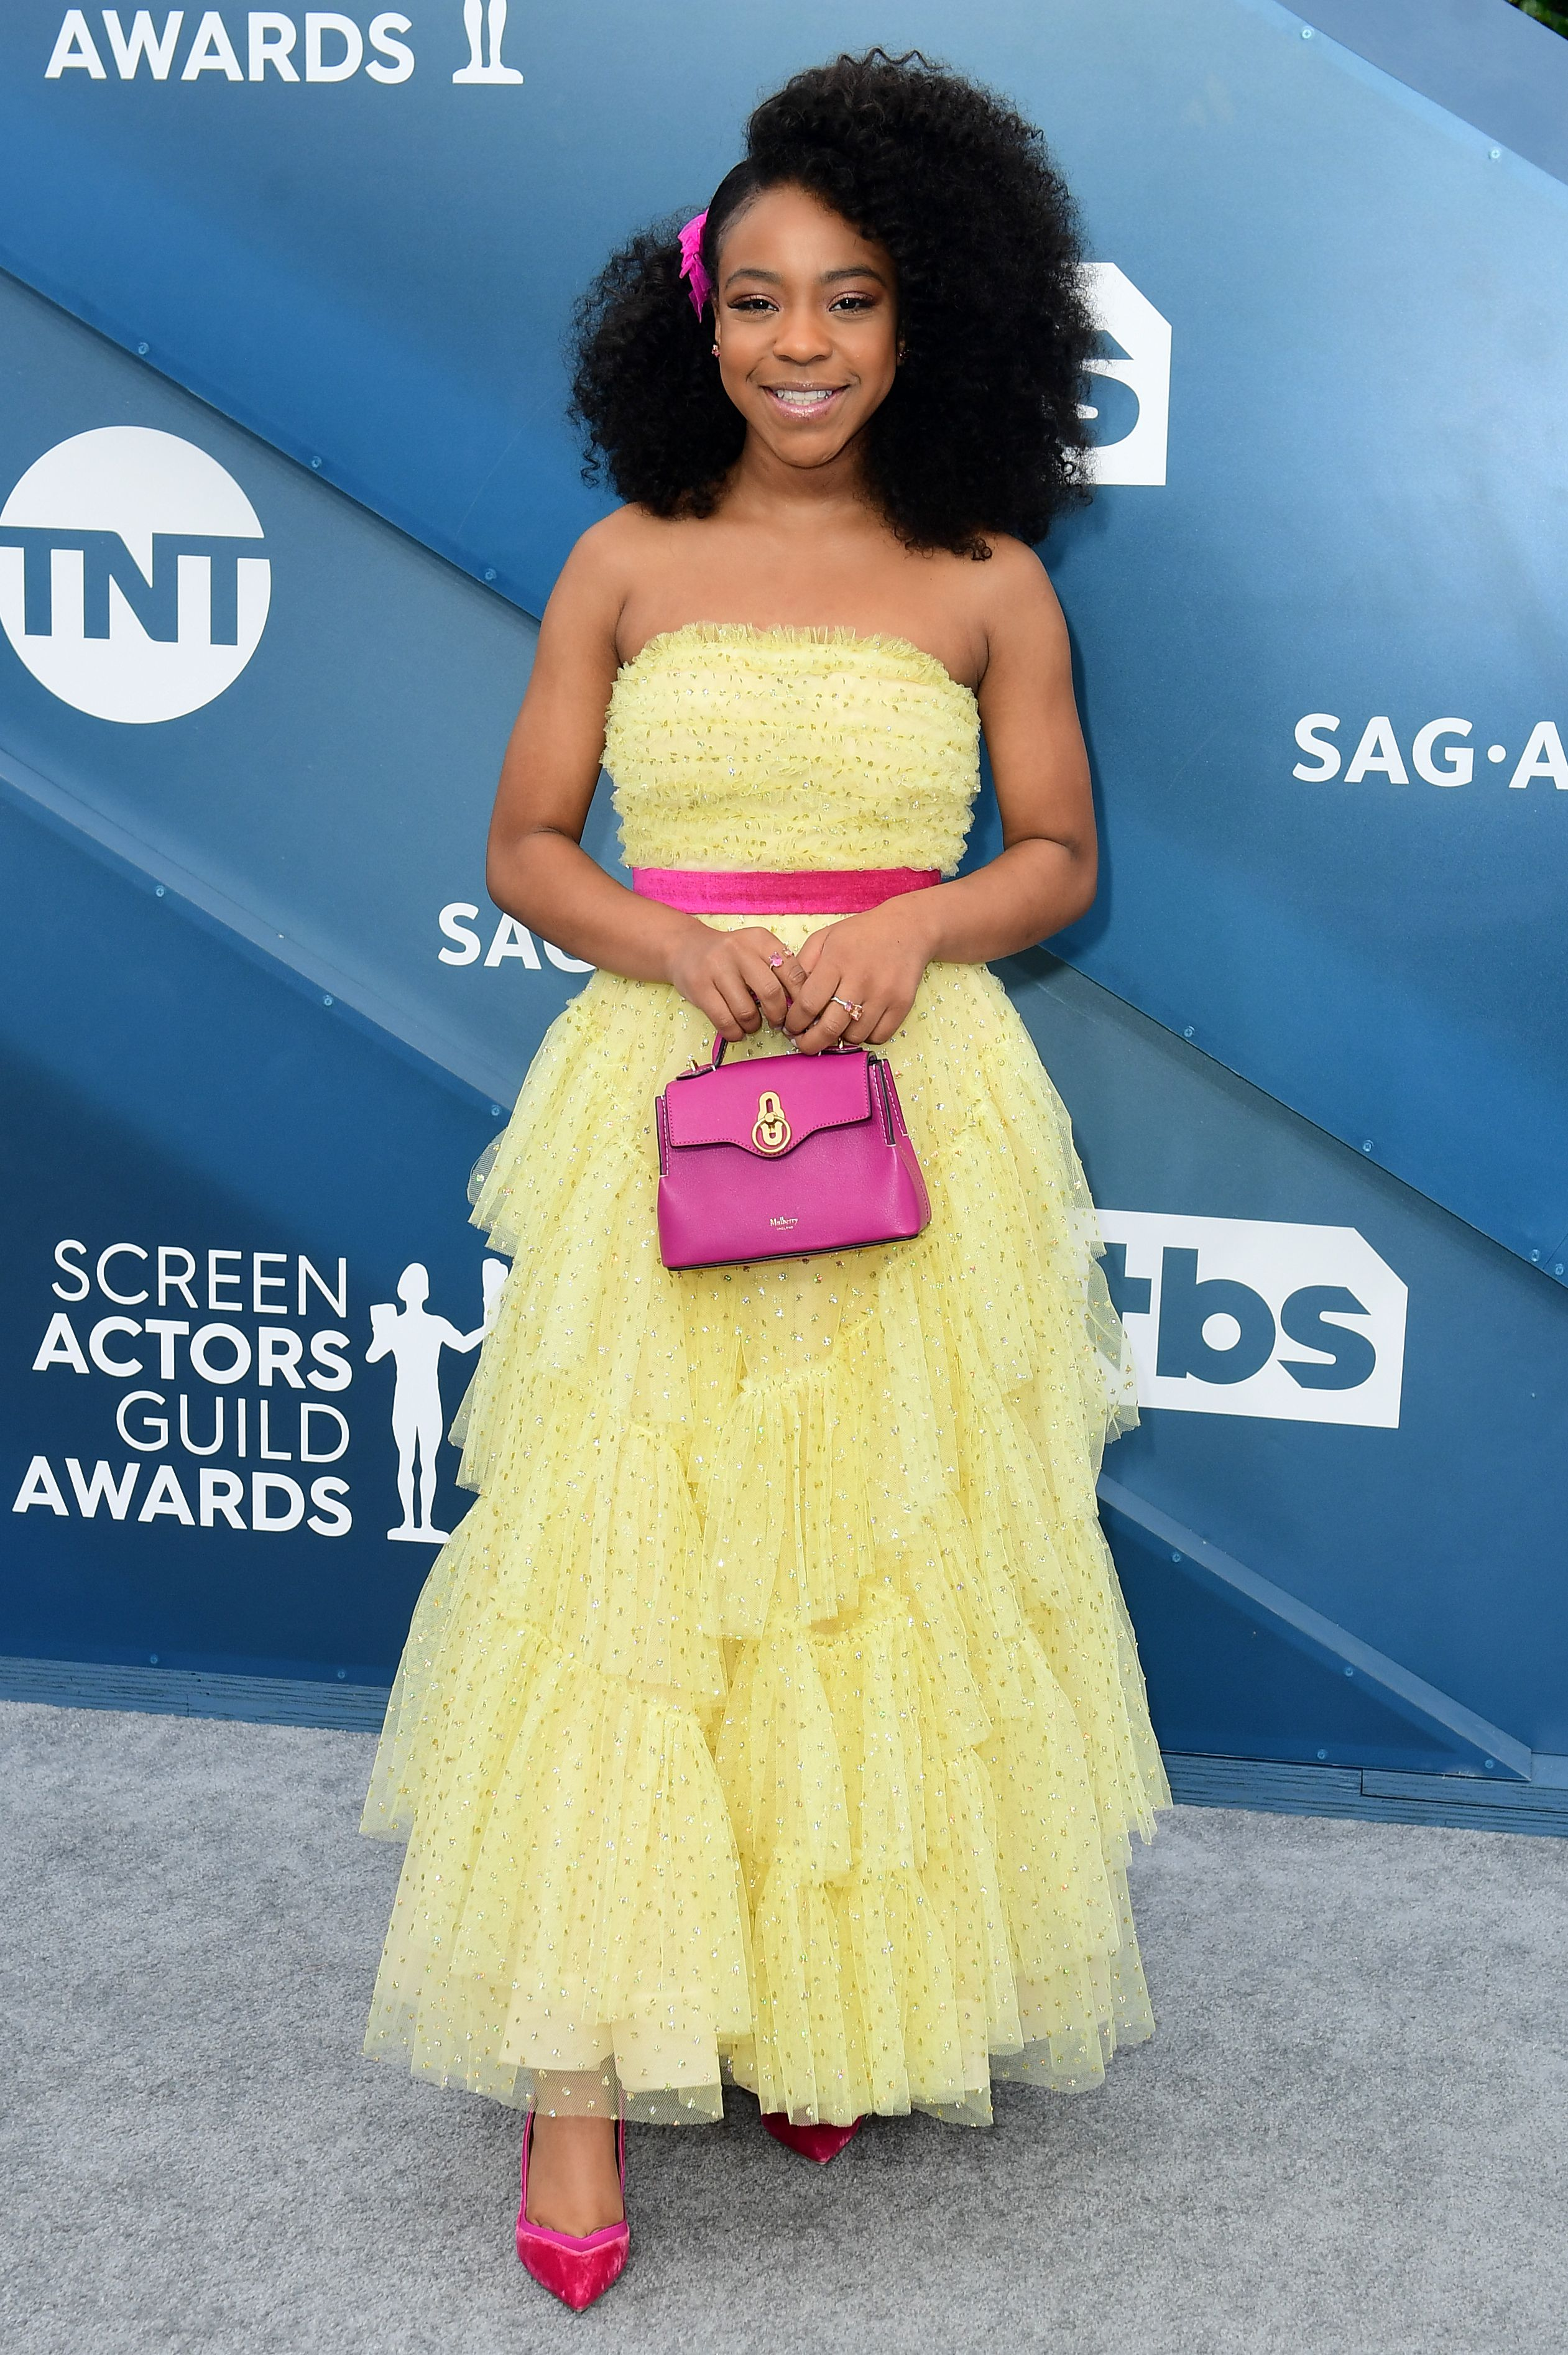 US actress Priah Ferguson arrives for the 26th Annual Screen Actors Guild Awards at the Shrine Auditorium in Los Angeles on January 19, 2020. (Photo by FREDERIC J. BROWN / AFP) (Photo by FREDERIC J. BROWN/AFP via Getty Images)